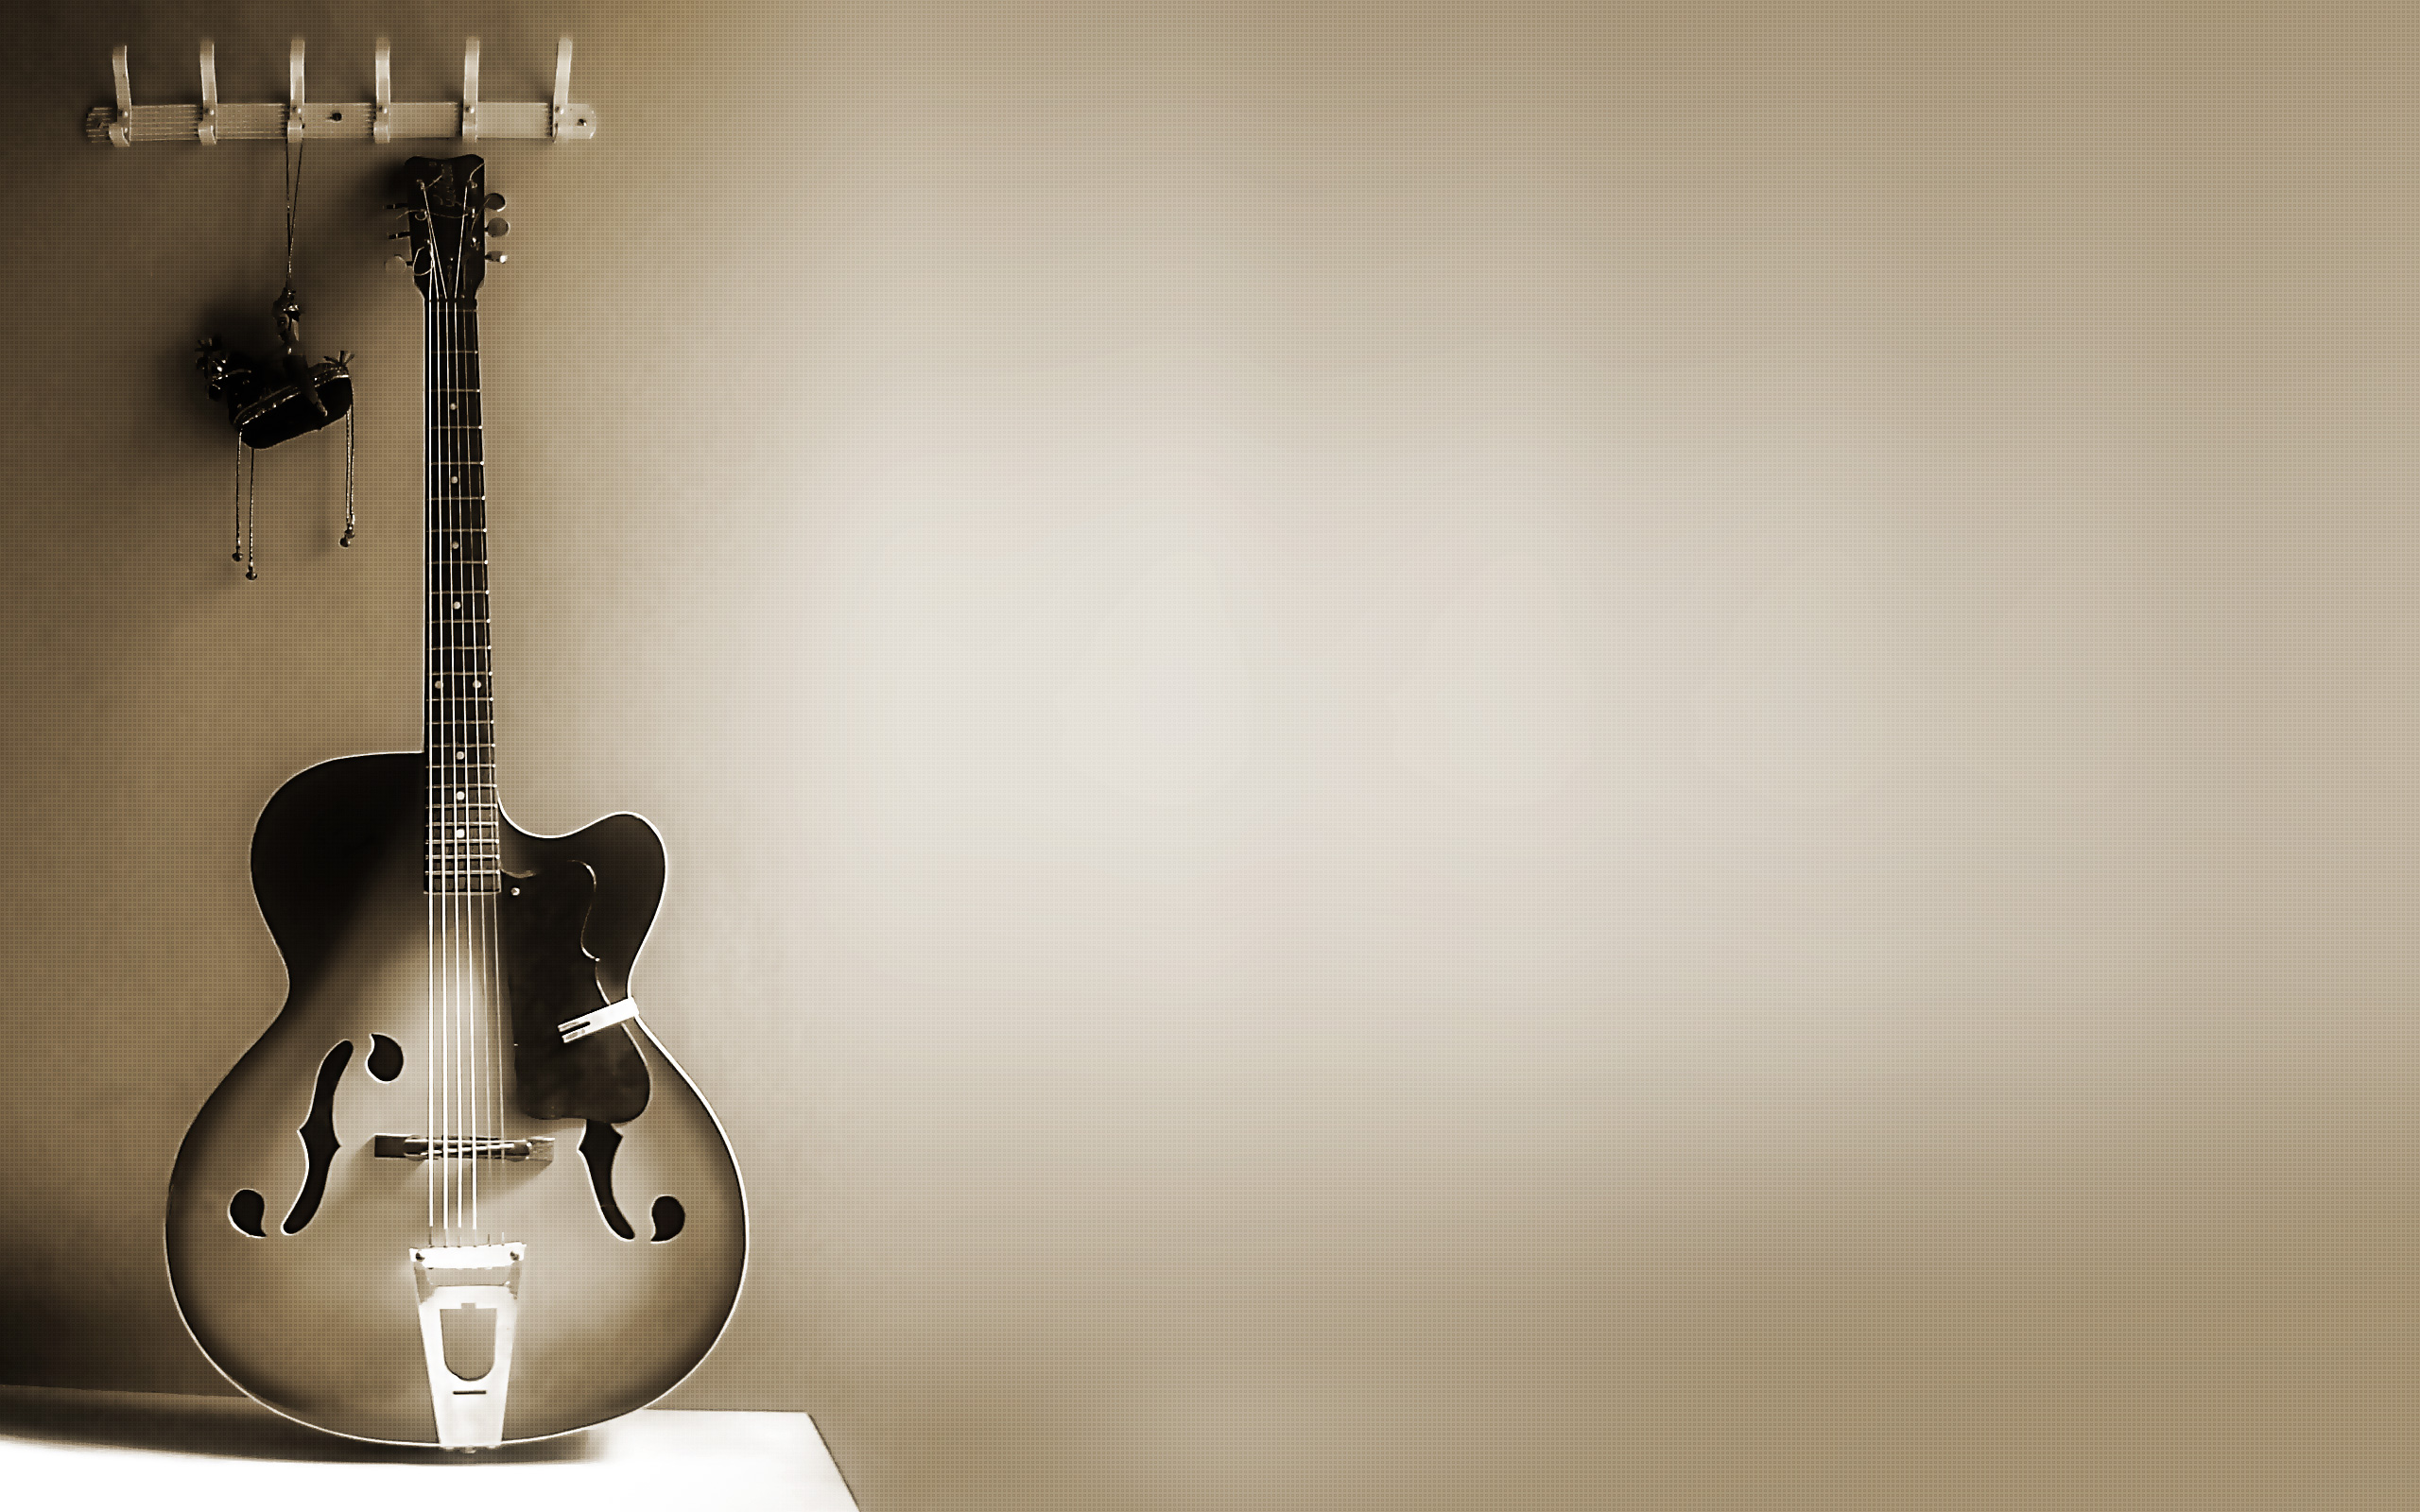 Guitar wallpaper background 58781 2560x1600 px for Hd wallpapers for home walls